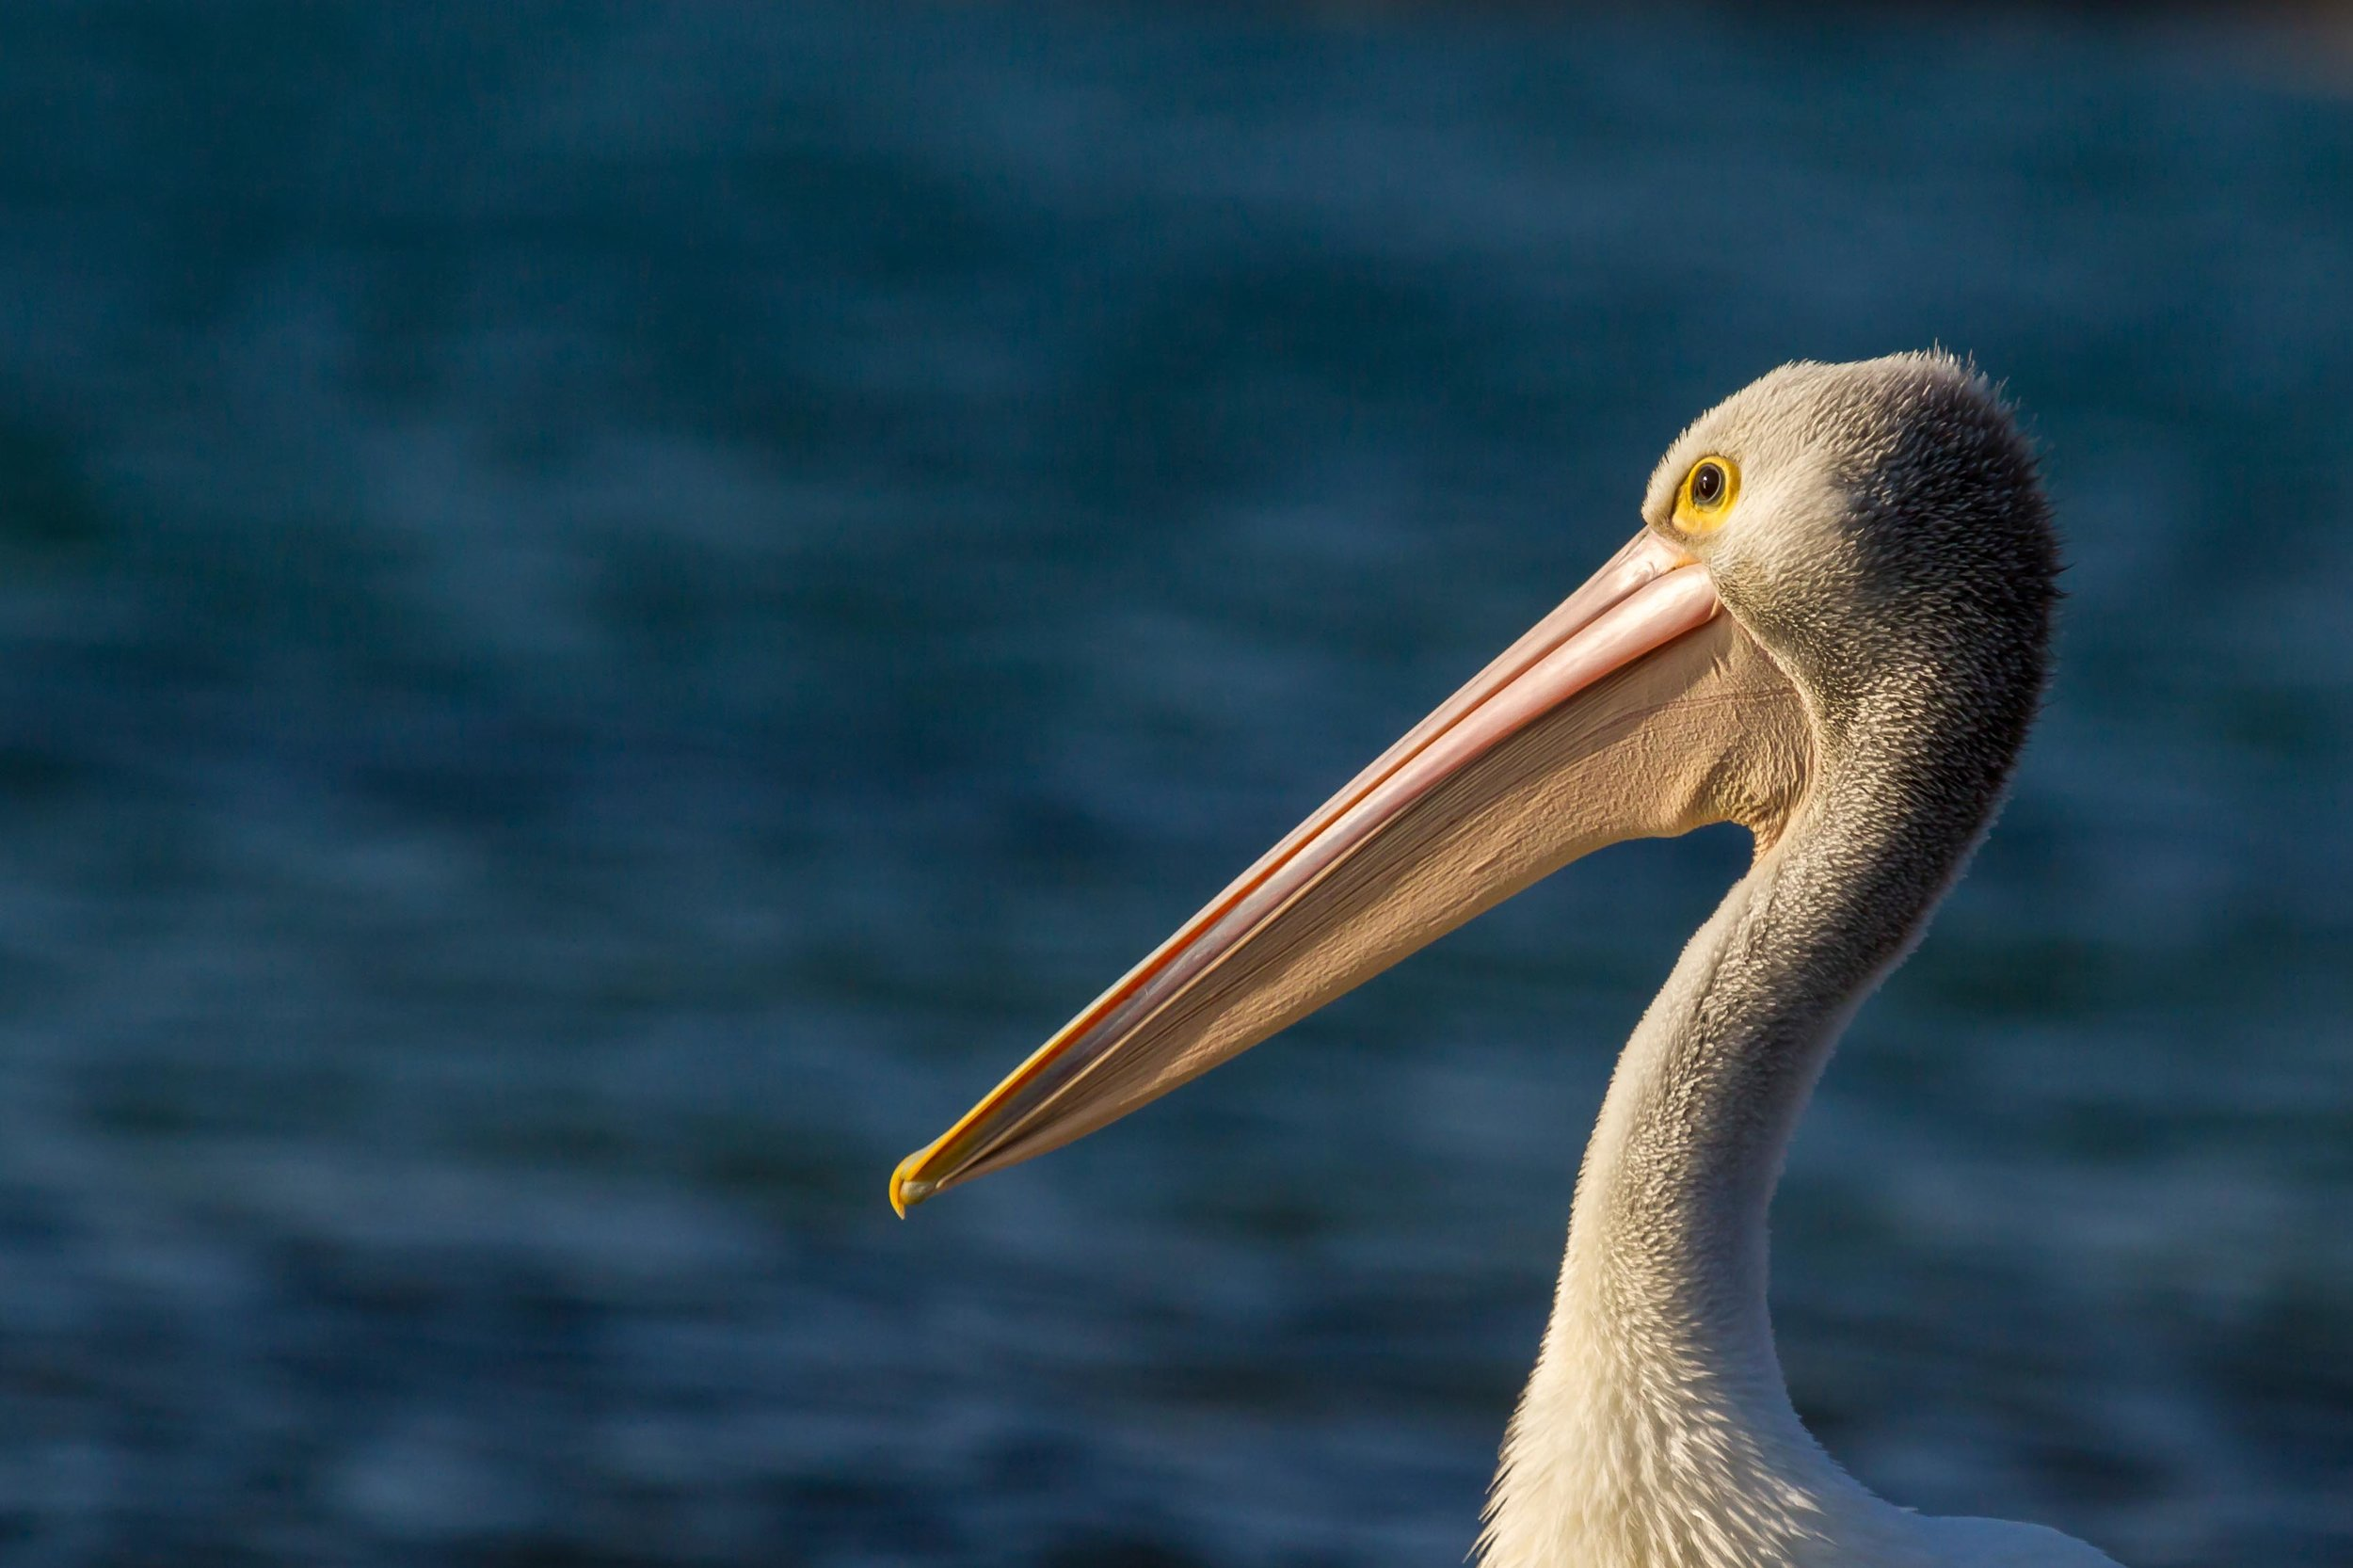 pelicanprofileb (1 of 1).jpg